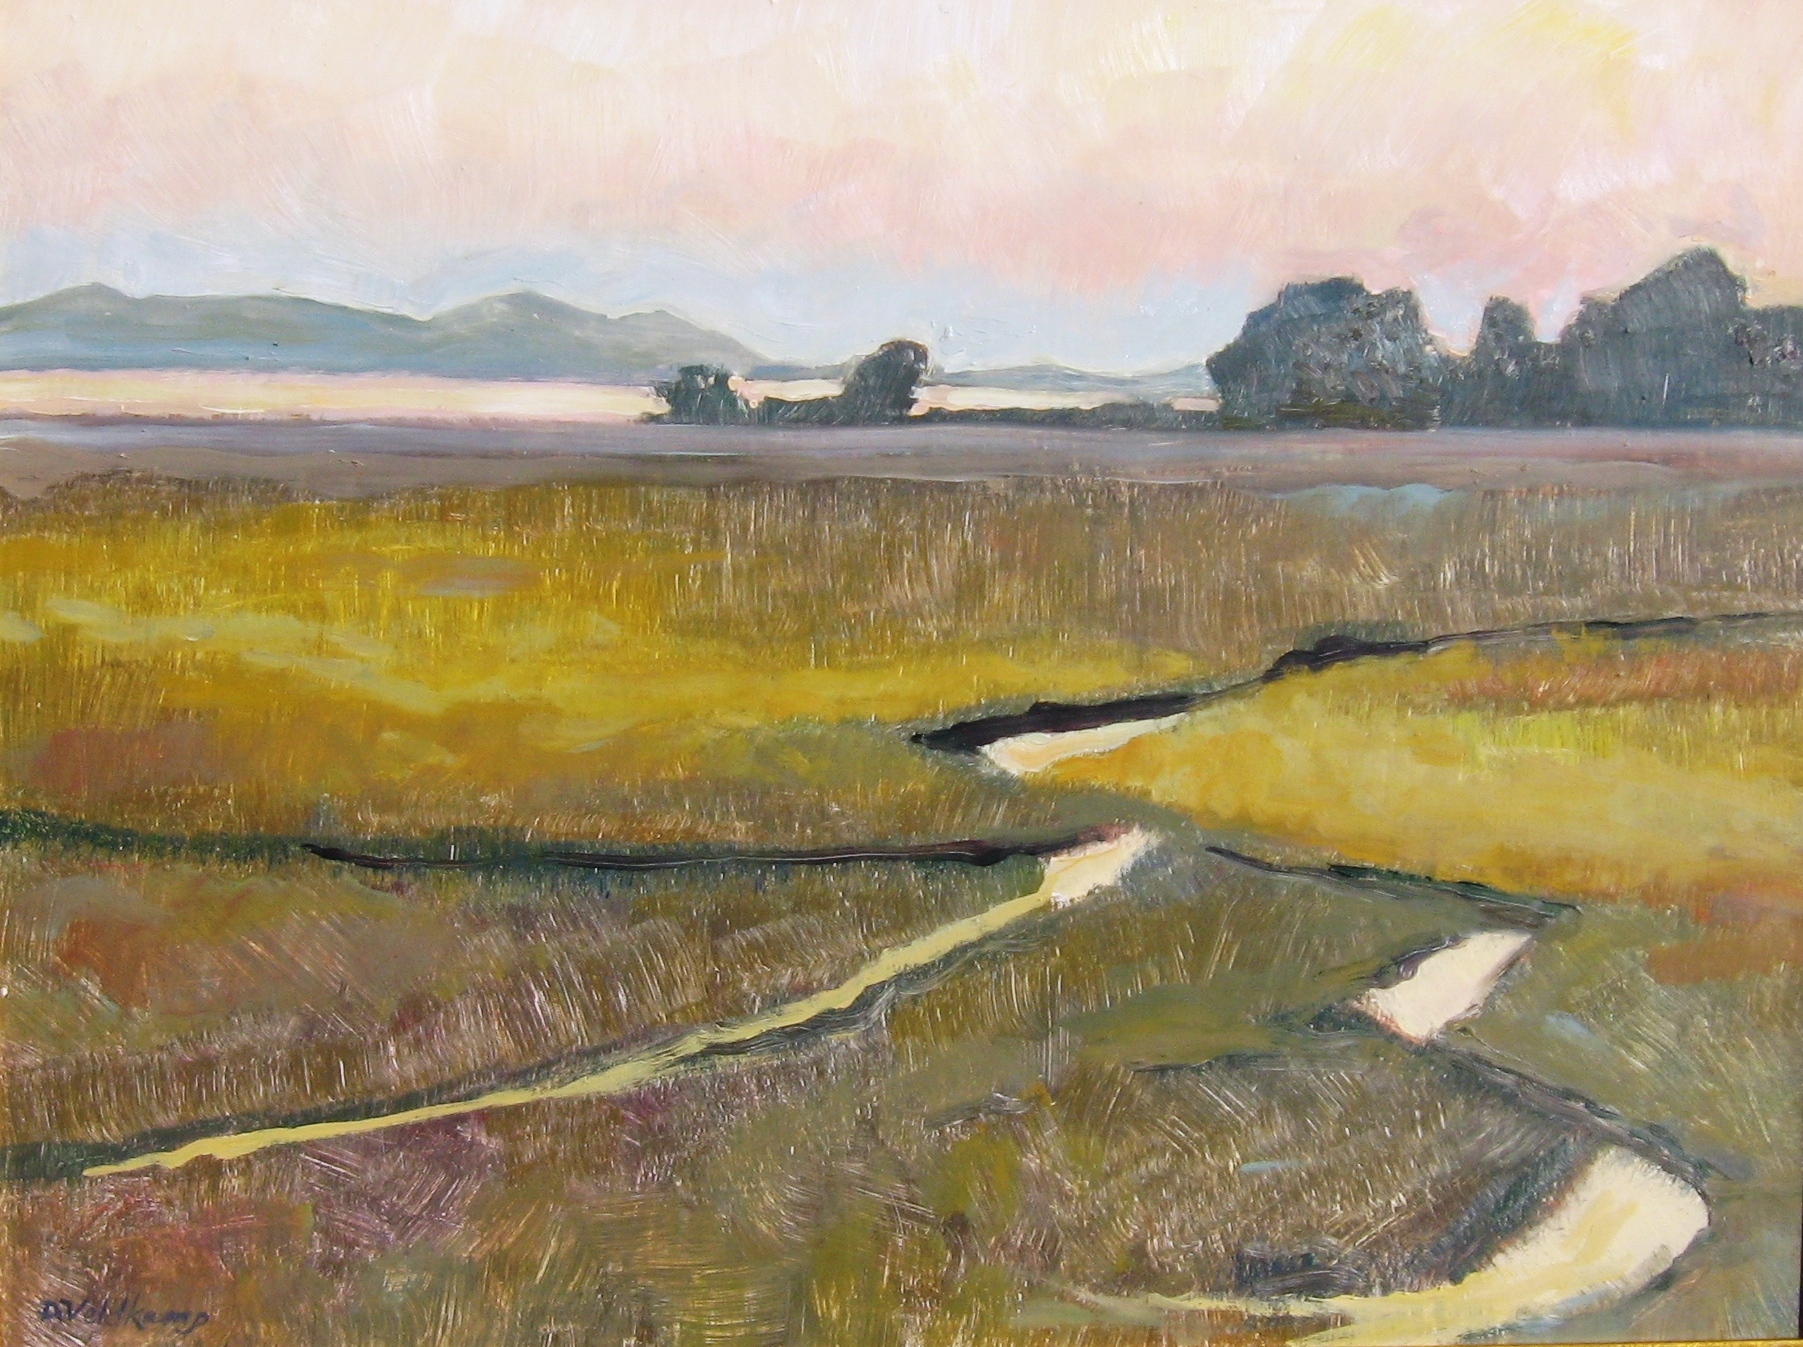 Morning Light on Estuary, 18 x 24 inches, oil on panel, 2010 - UNAVAILABLE